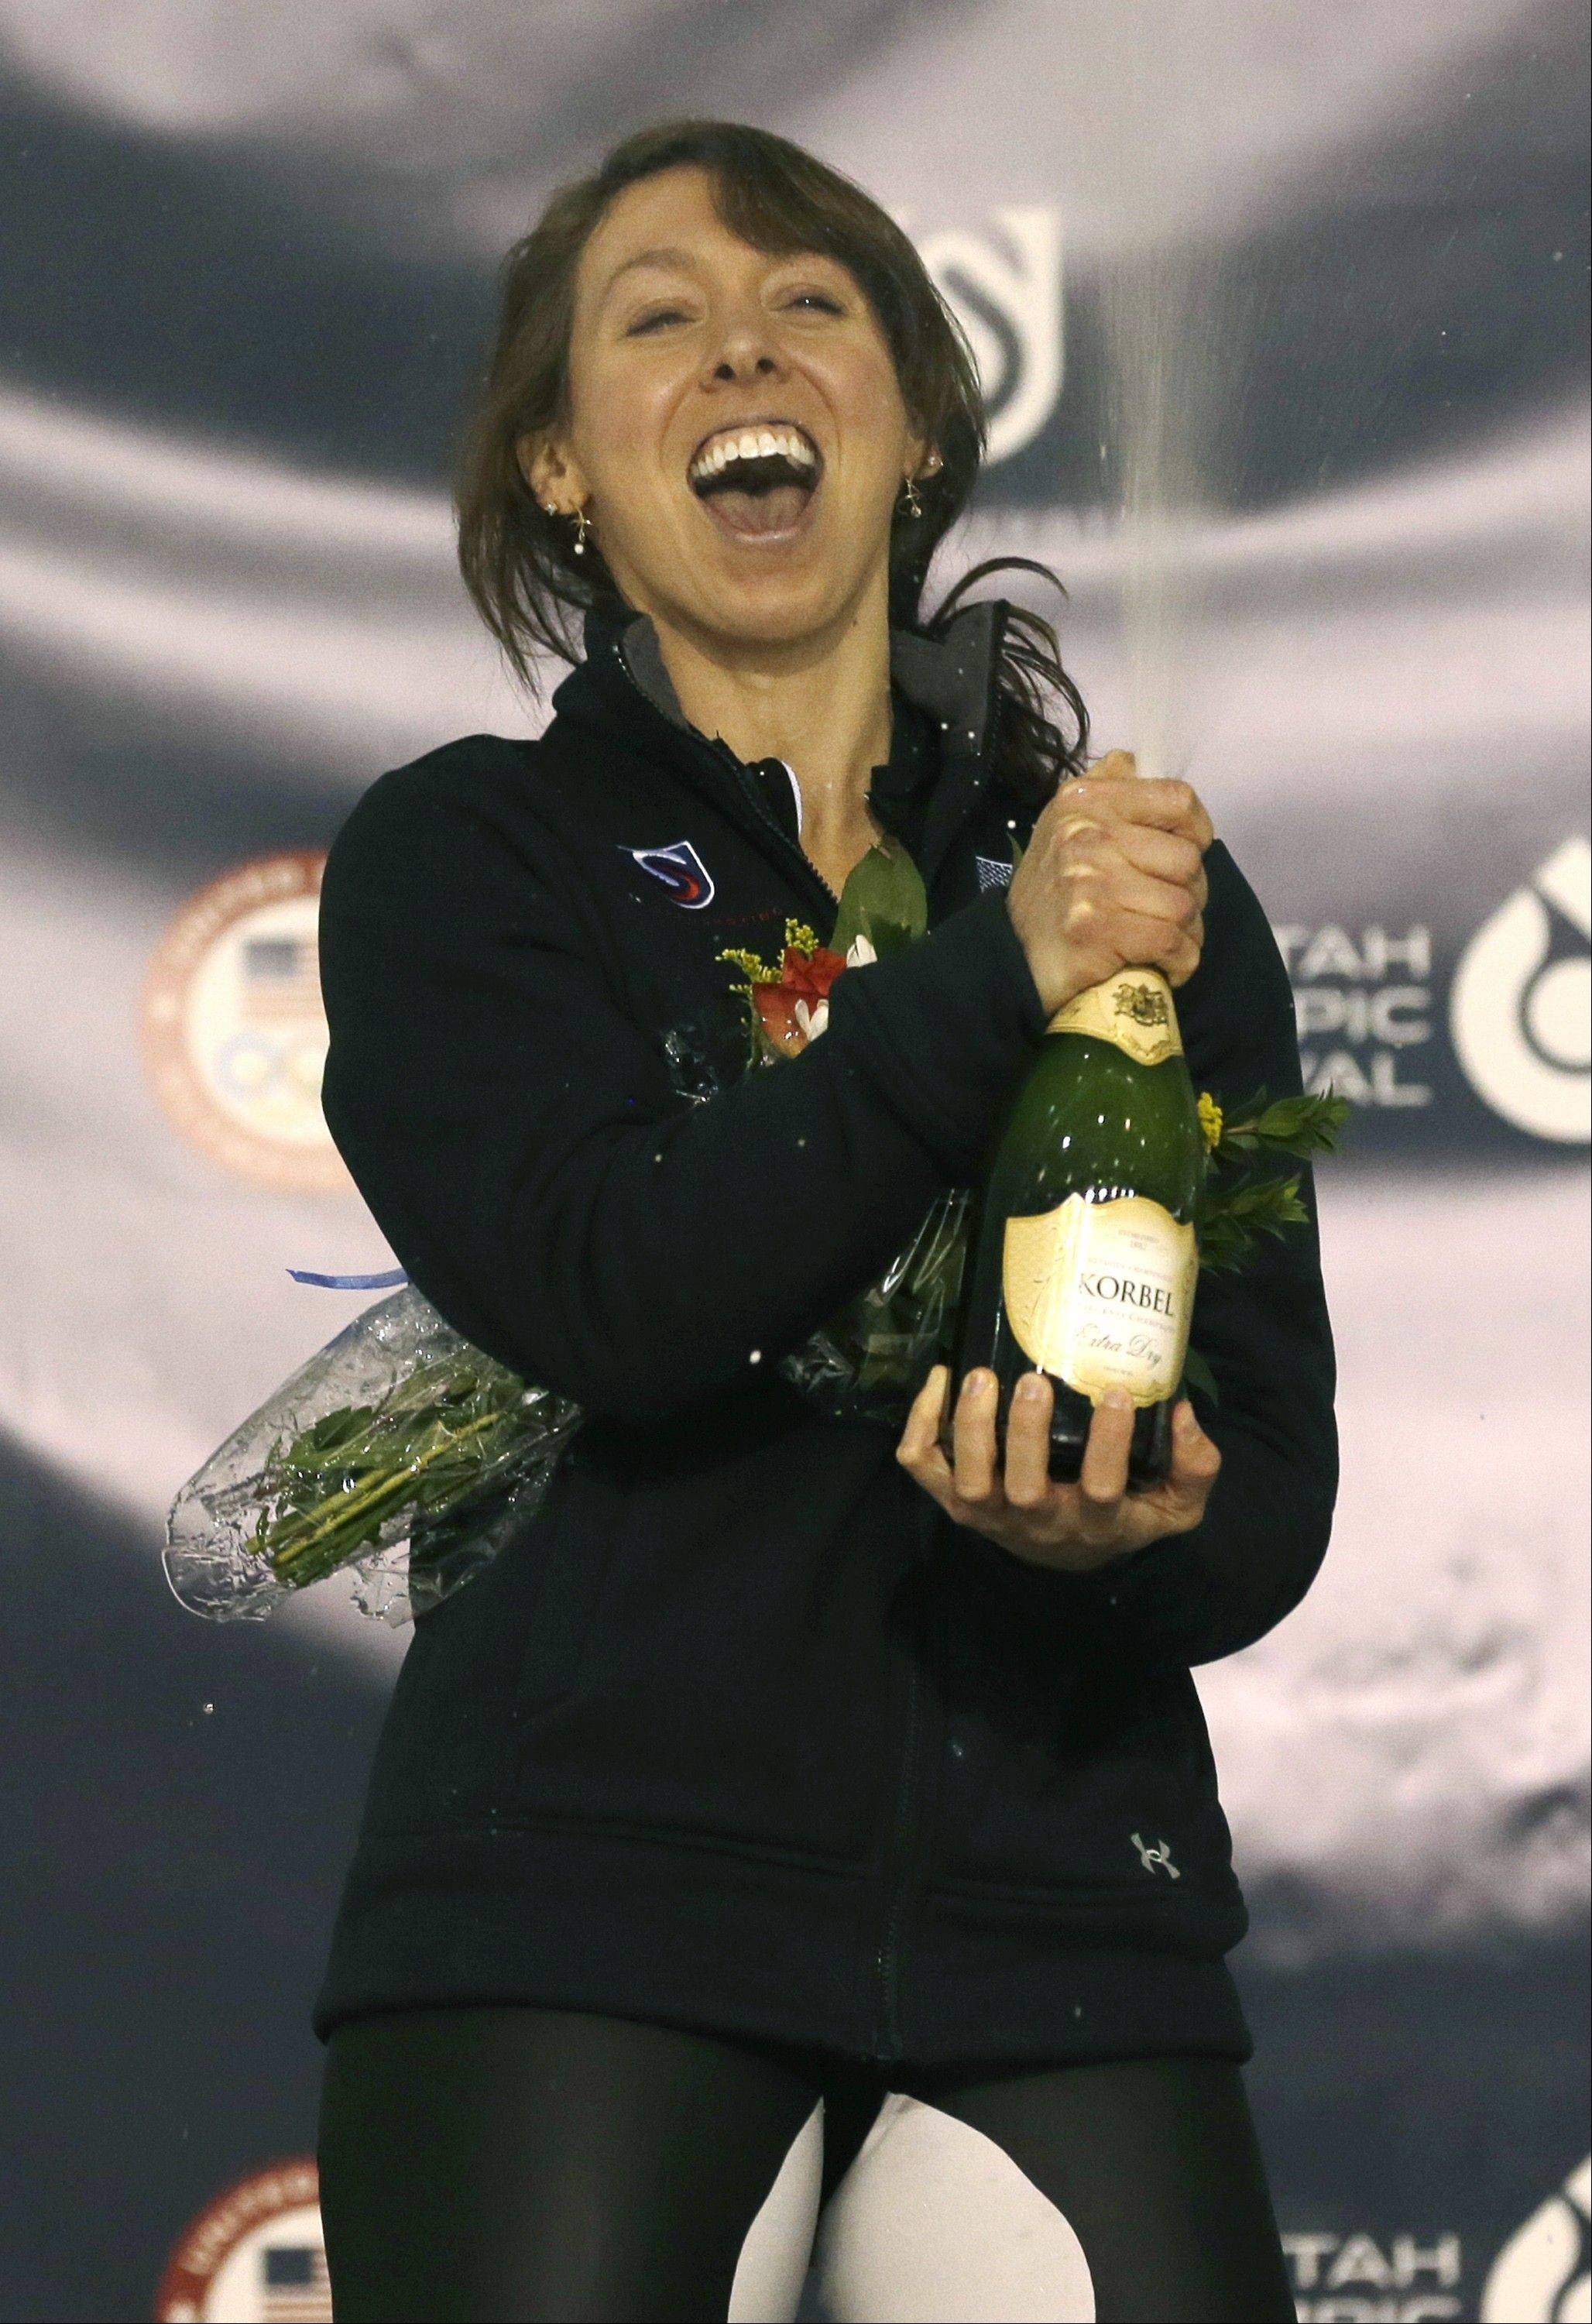 Jilleanne Rookard celebrates on the medals podium after winning the women's 3,000-meter race during the U.S. Olympic speedskating trials on Friday in Kearns, Utah.